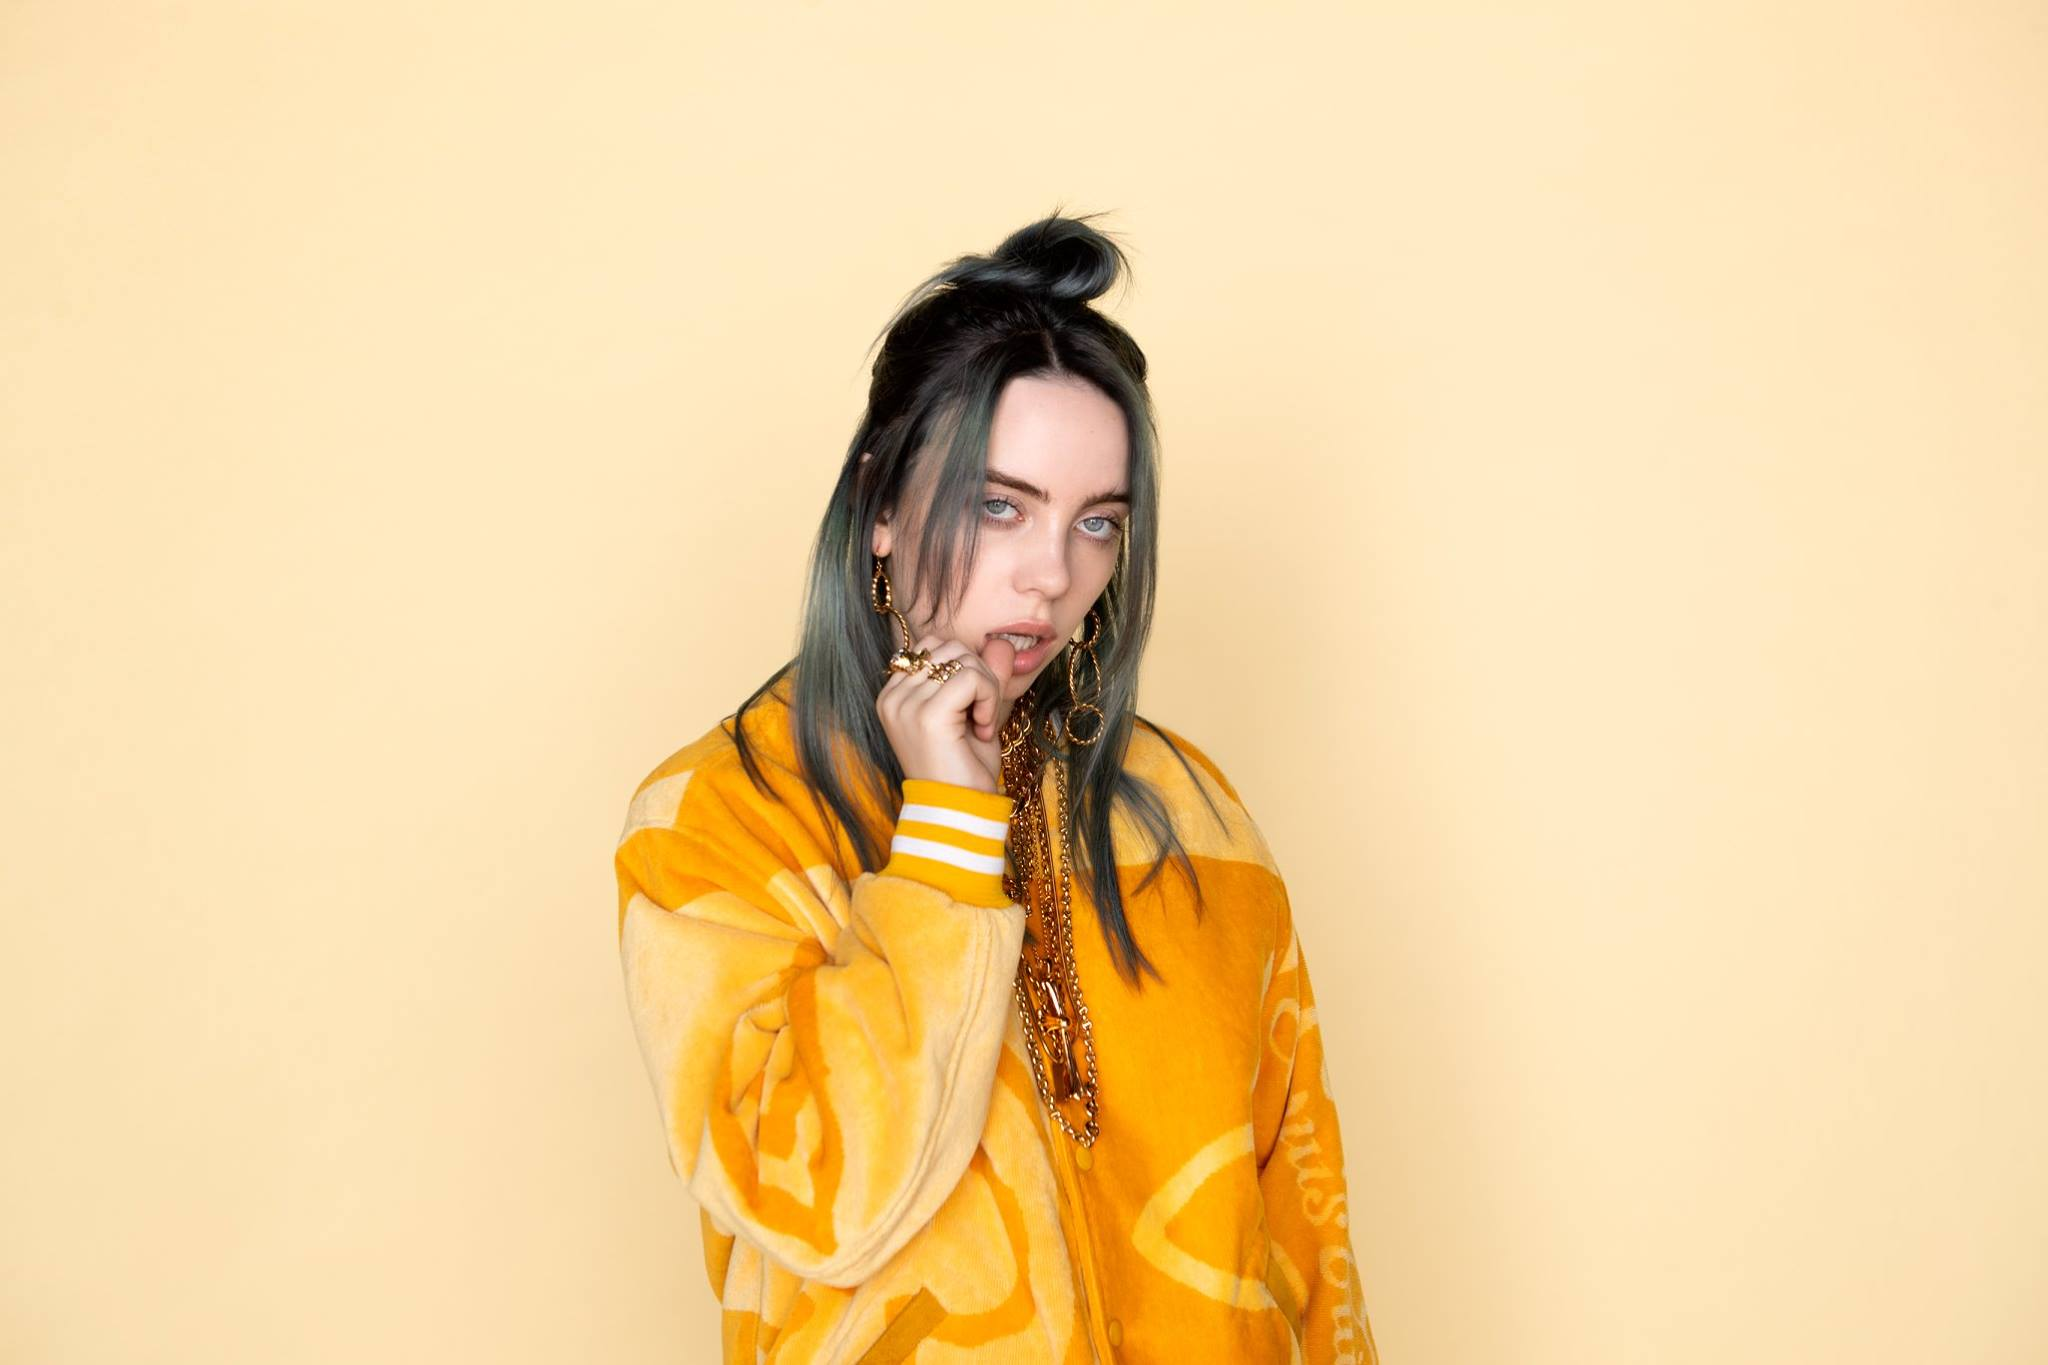 Who is Billie Eilish?: The 17-year-old pop star ruling the Billboards